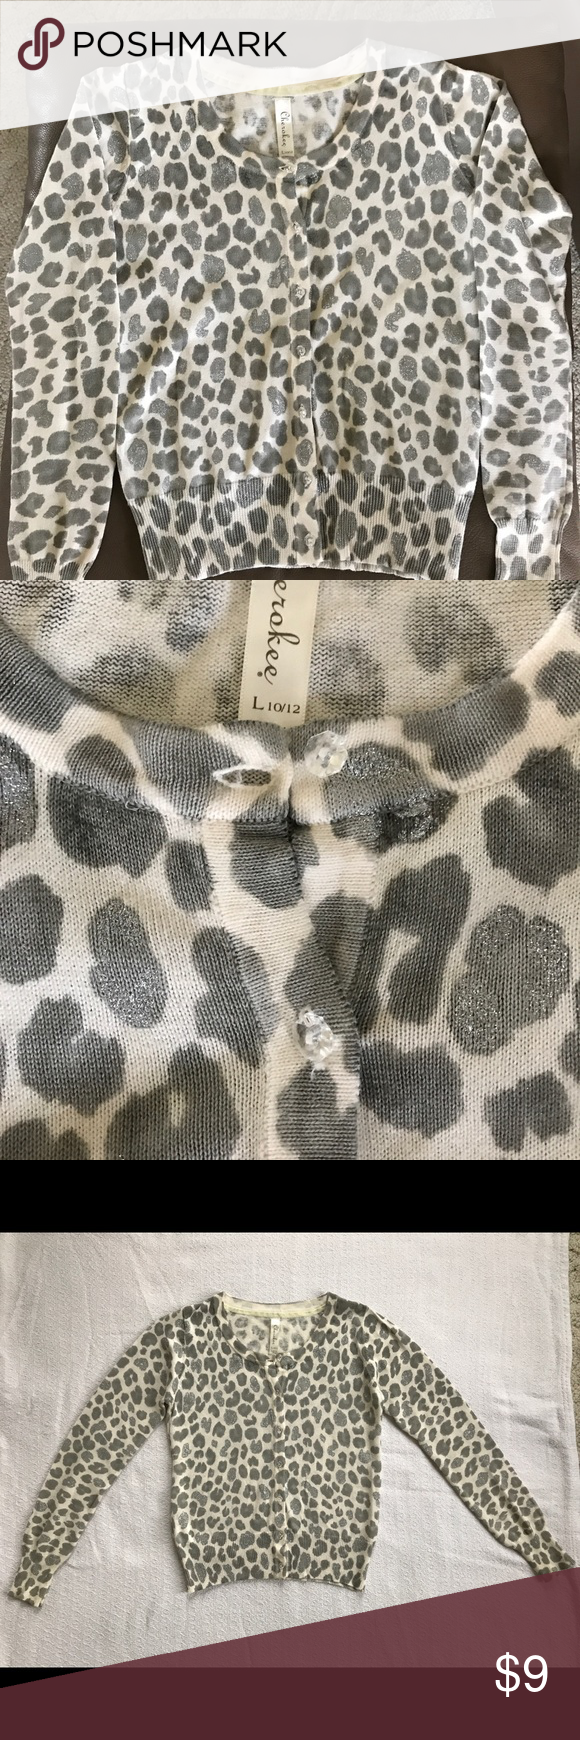 Girls Grey and Silver Leopard Print Cardigan New, never worn Girls ...